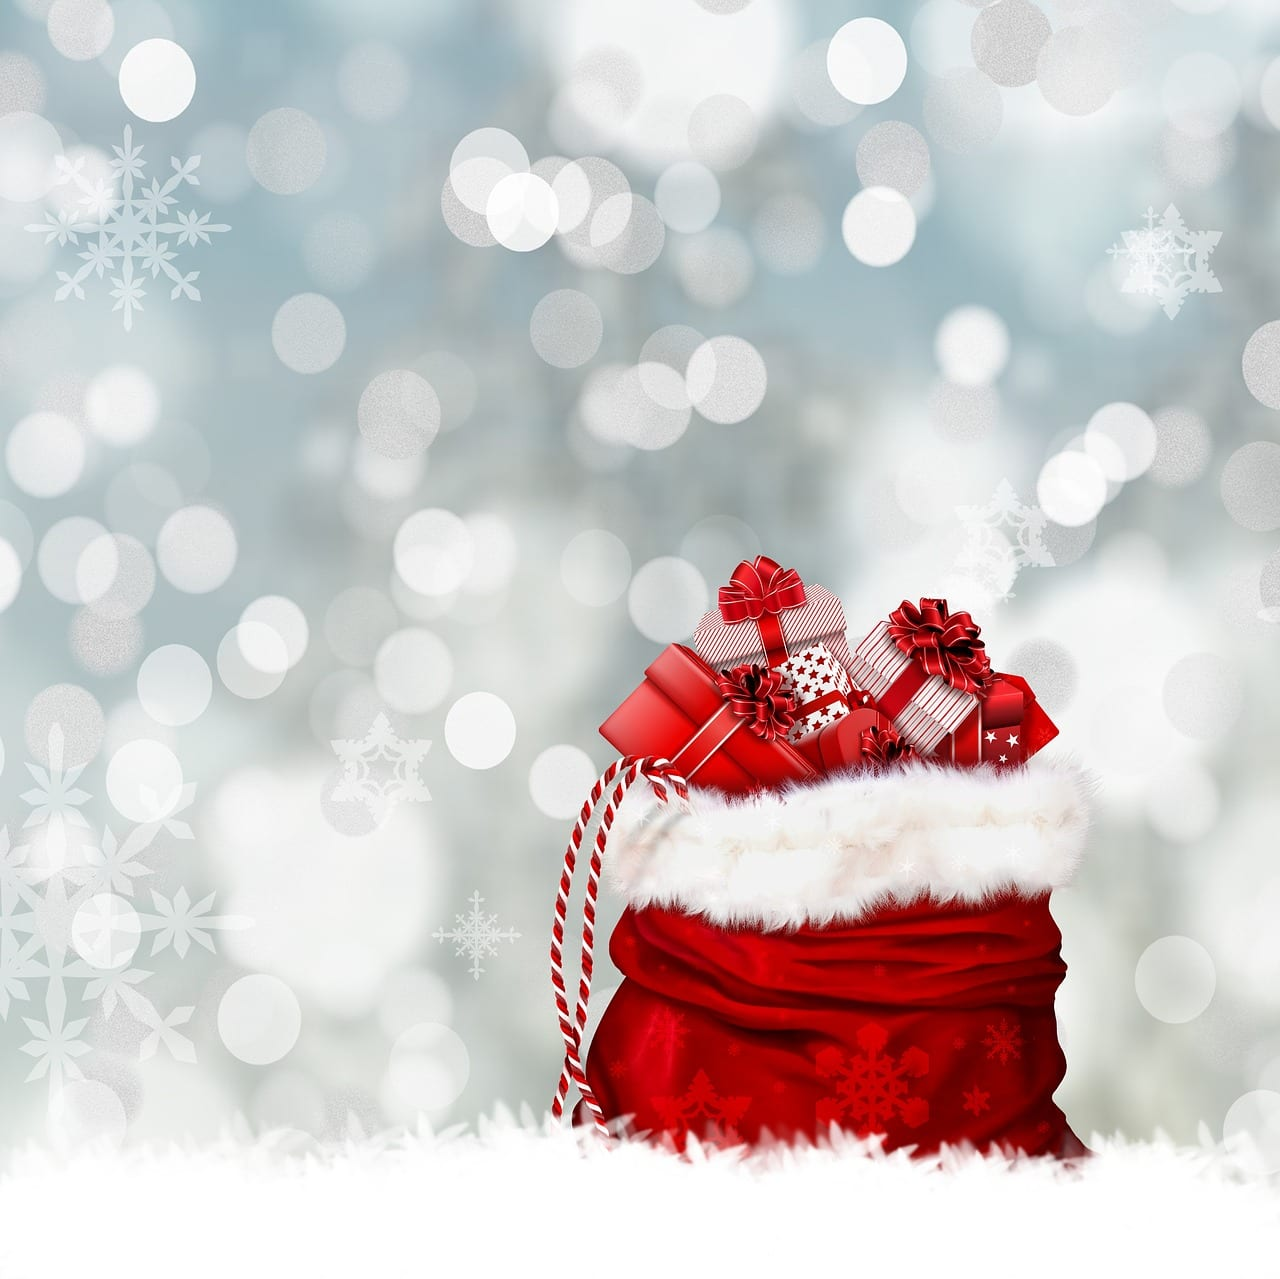 Great Christmas Video For ELLS – And Everybody Else, Too!